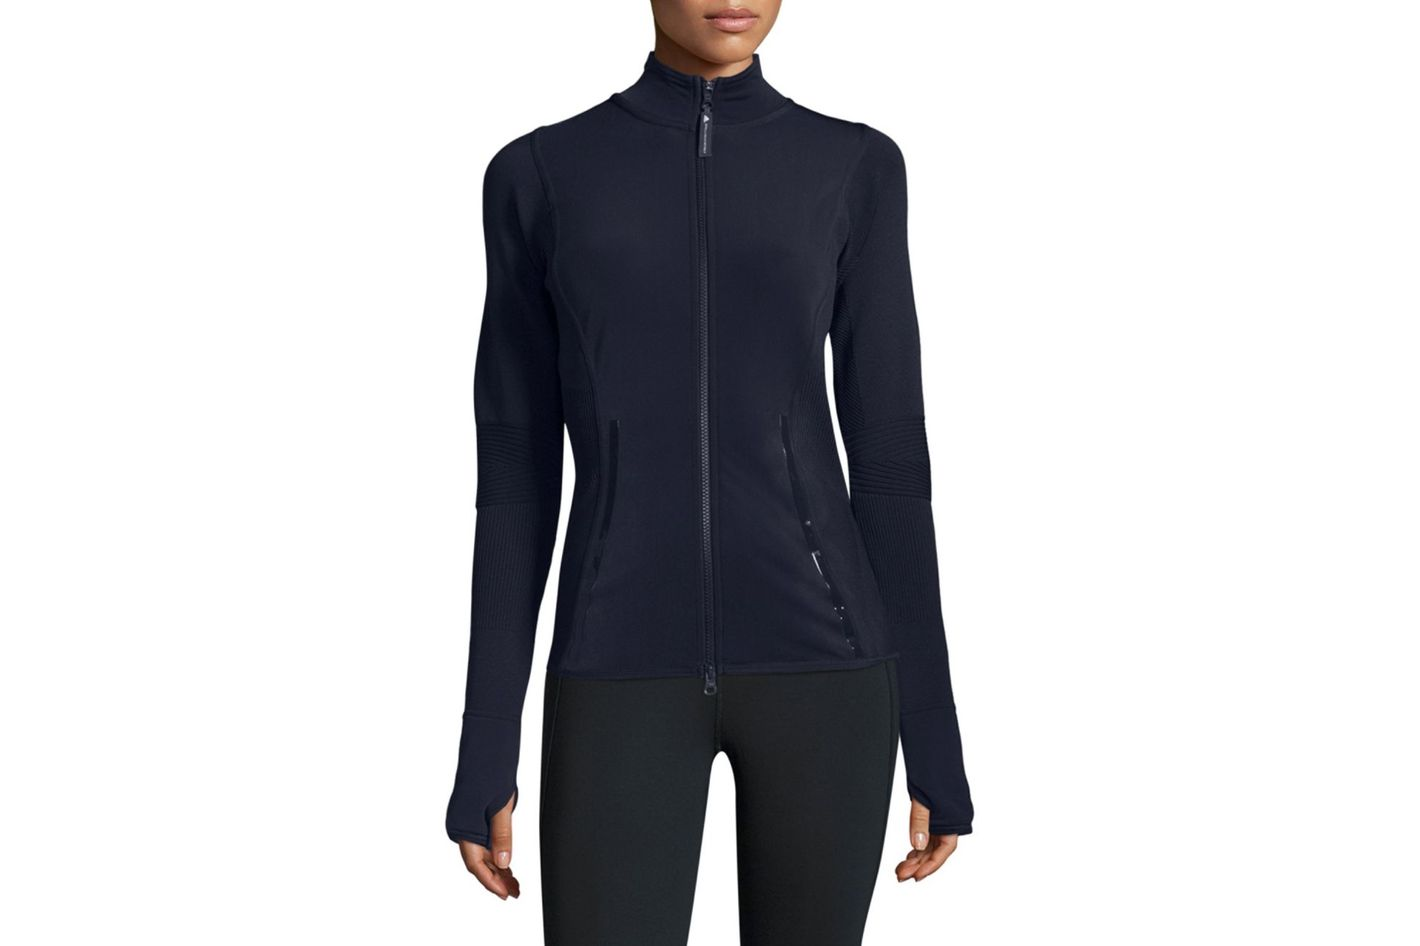 Adidas by Stella McCartney Run Knit Jacket